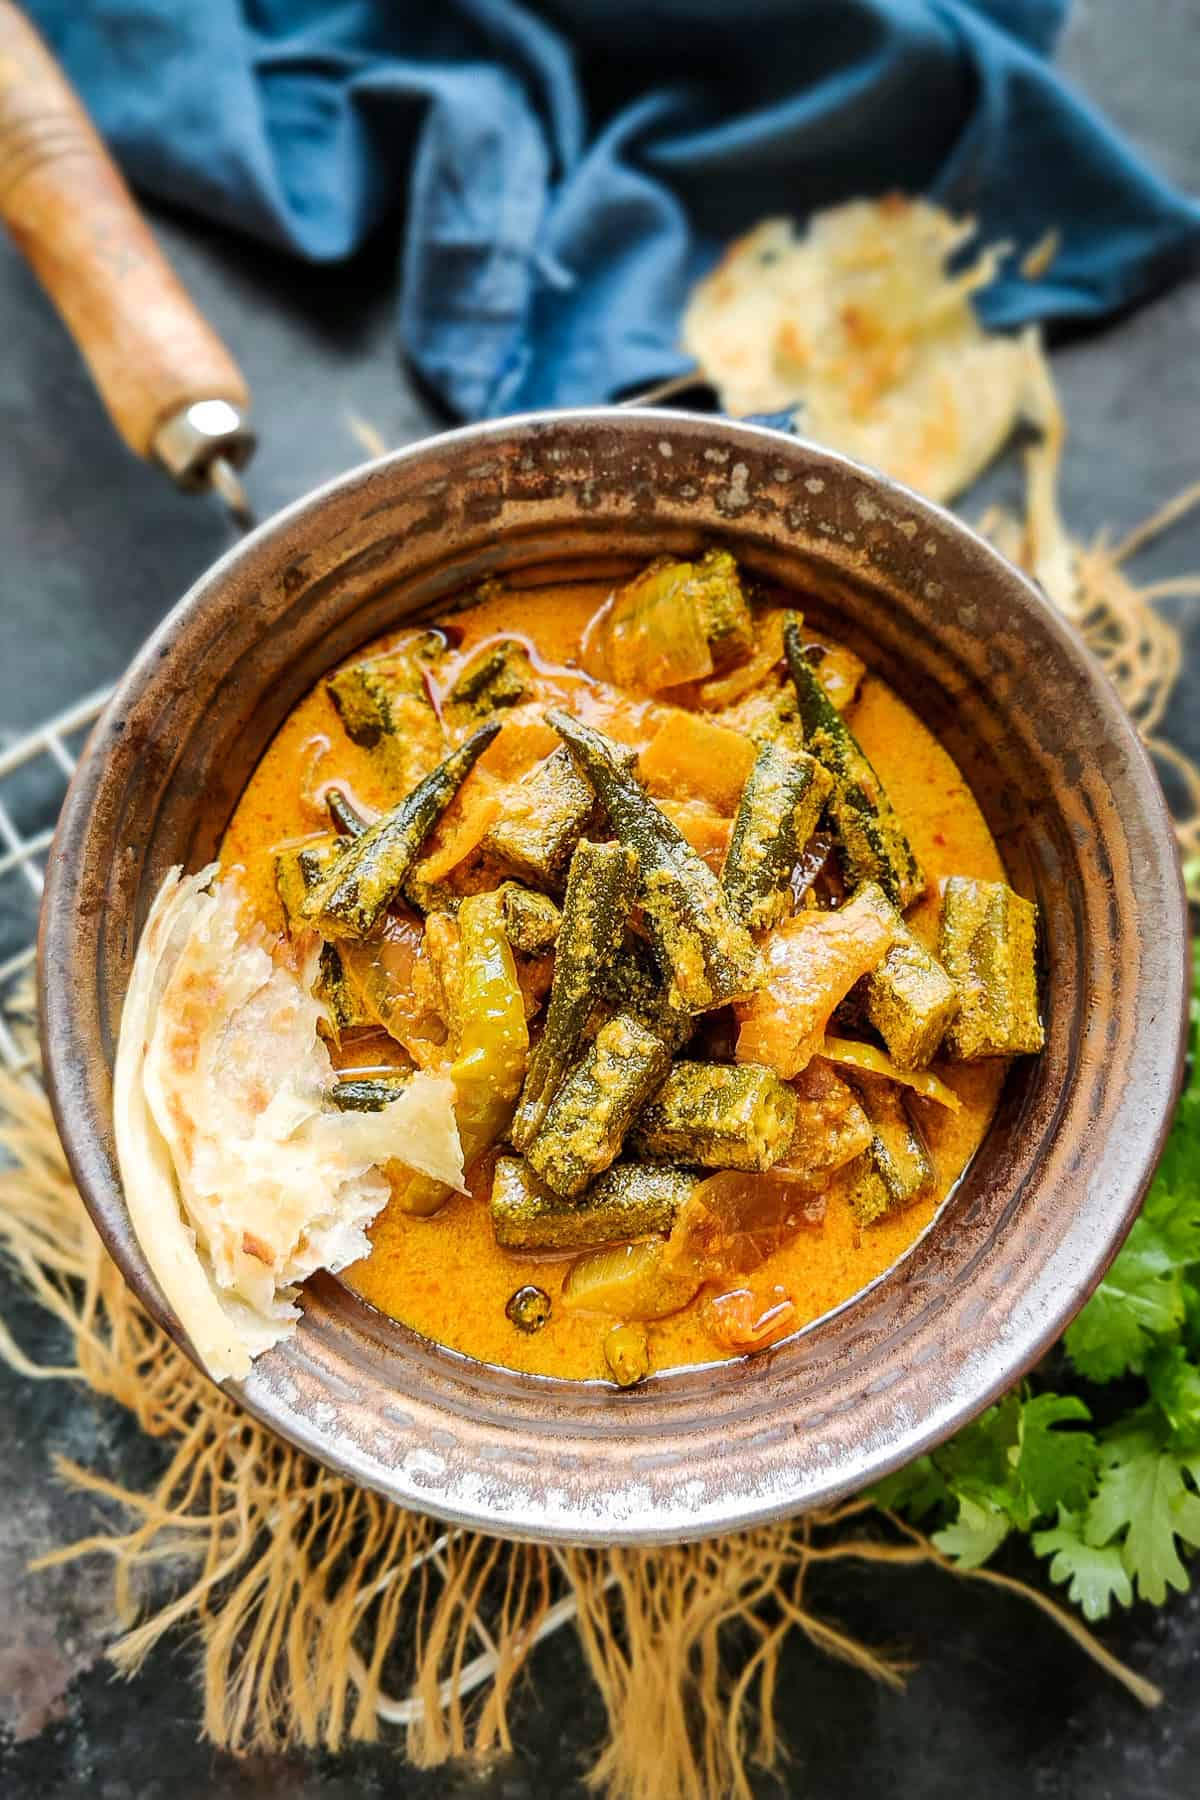 Dahi bhindi served in a bowl.